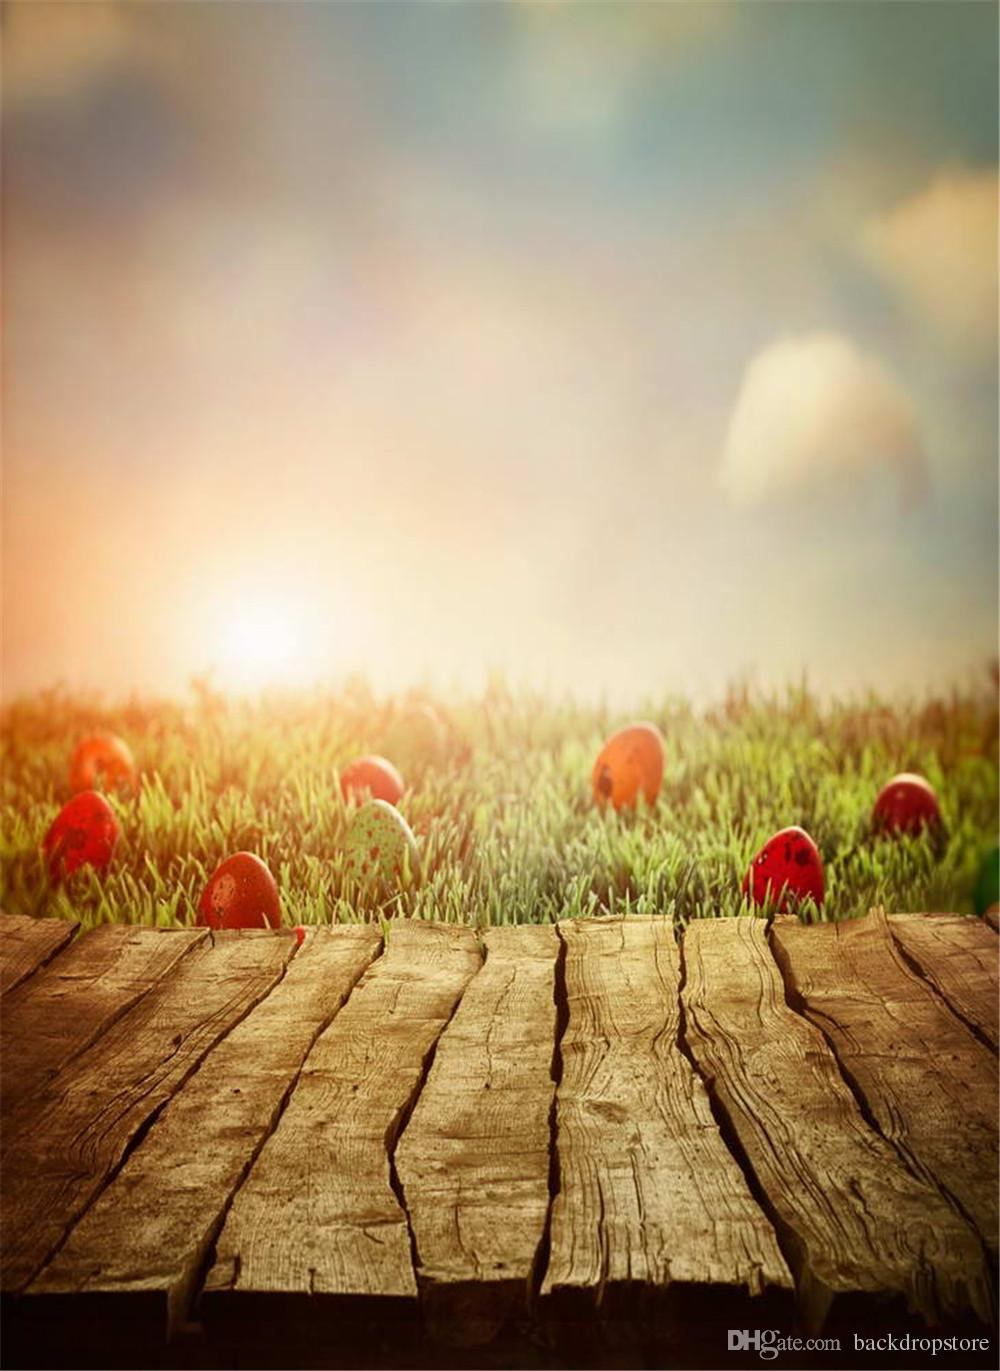 Easter Photo Backgrounds Vintage Wooden Panel Floor Fuzzy Light Blue Sky Cloud Red Eggs Green Grass Baby Newborn Photography Backdrop